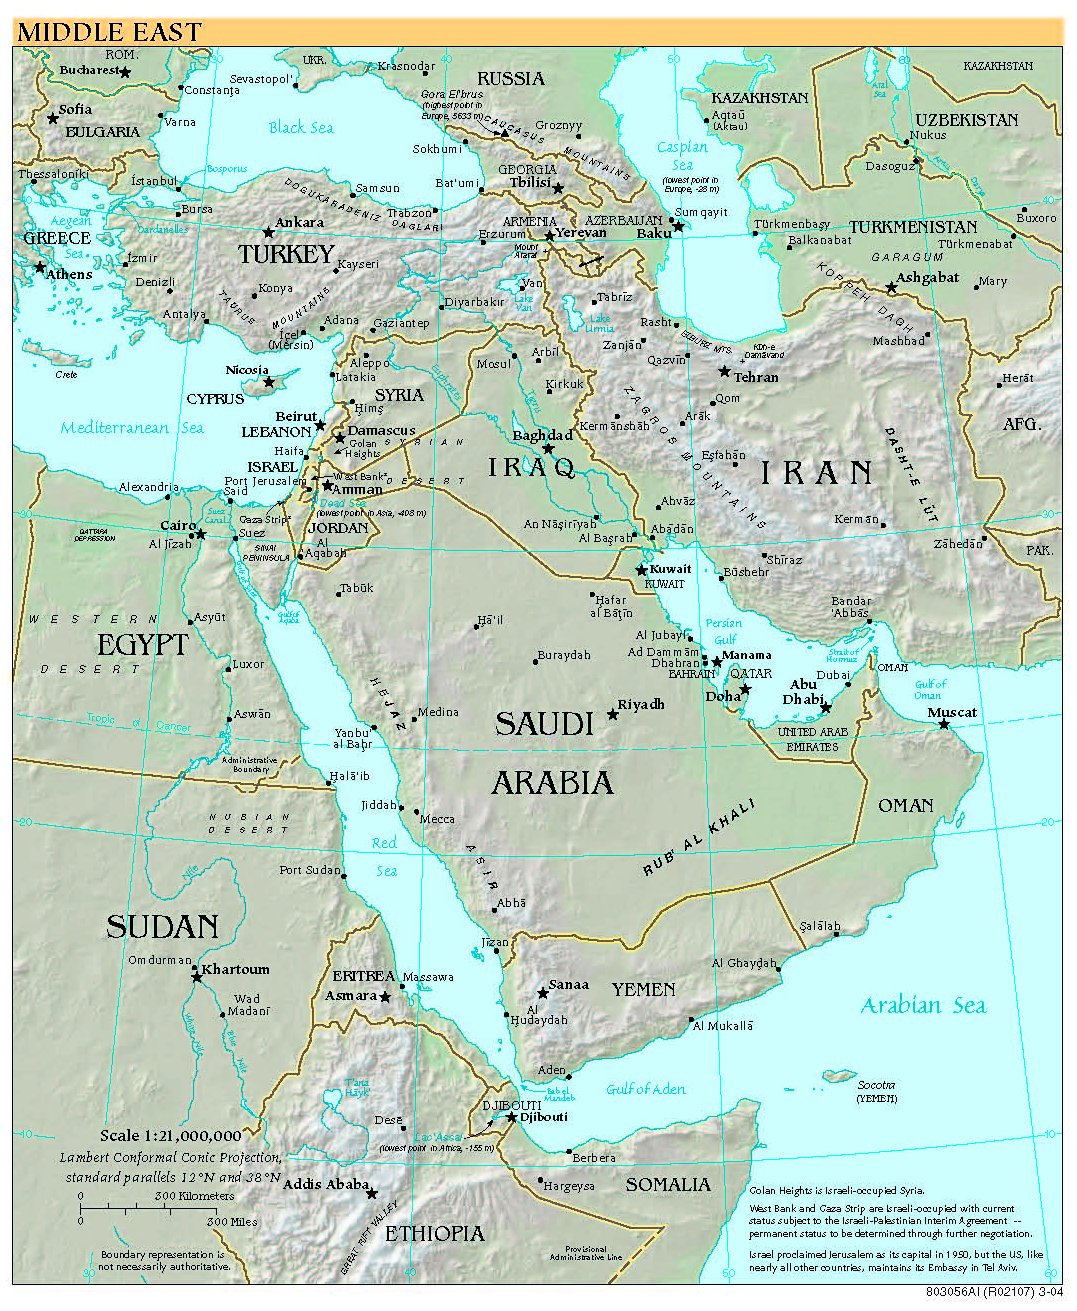 Free High Resolution Map of the Middle East